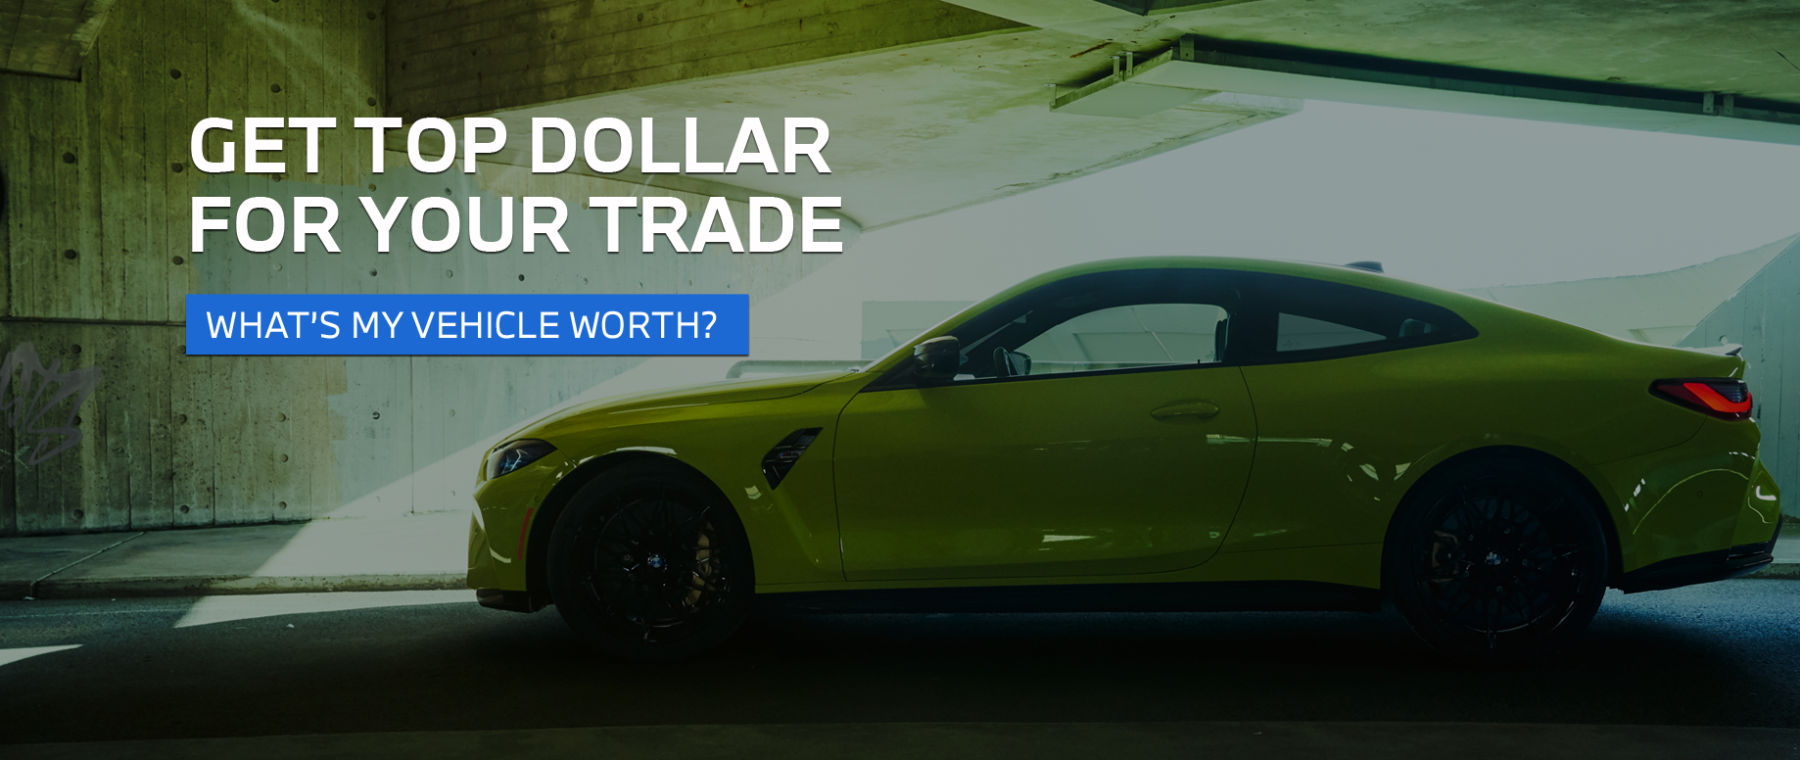 Get Top Dollar For Your Trade